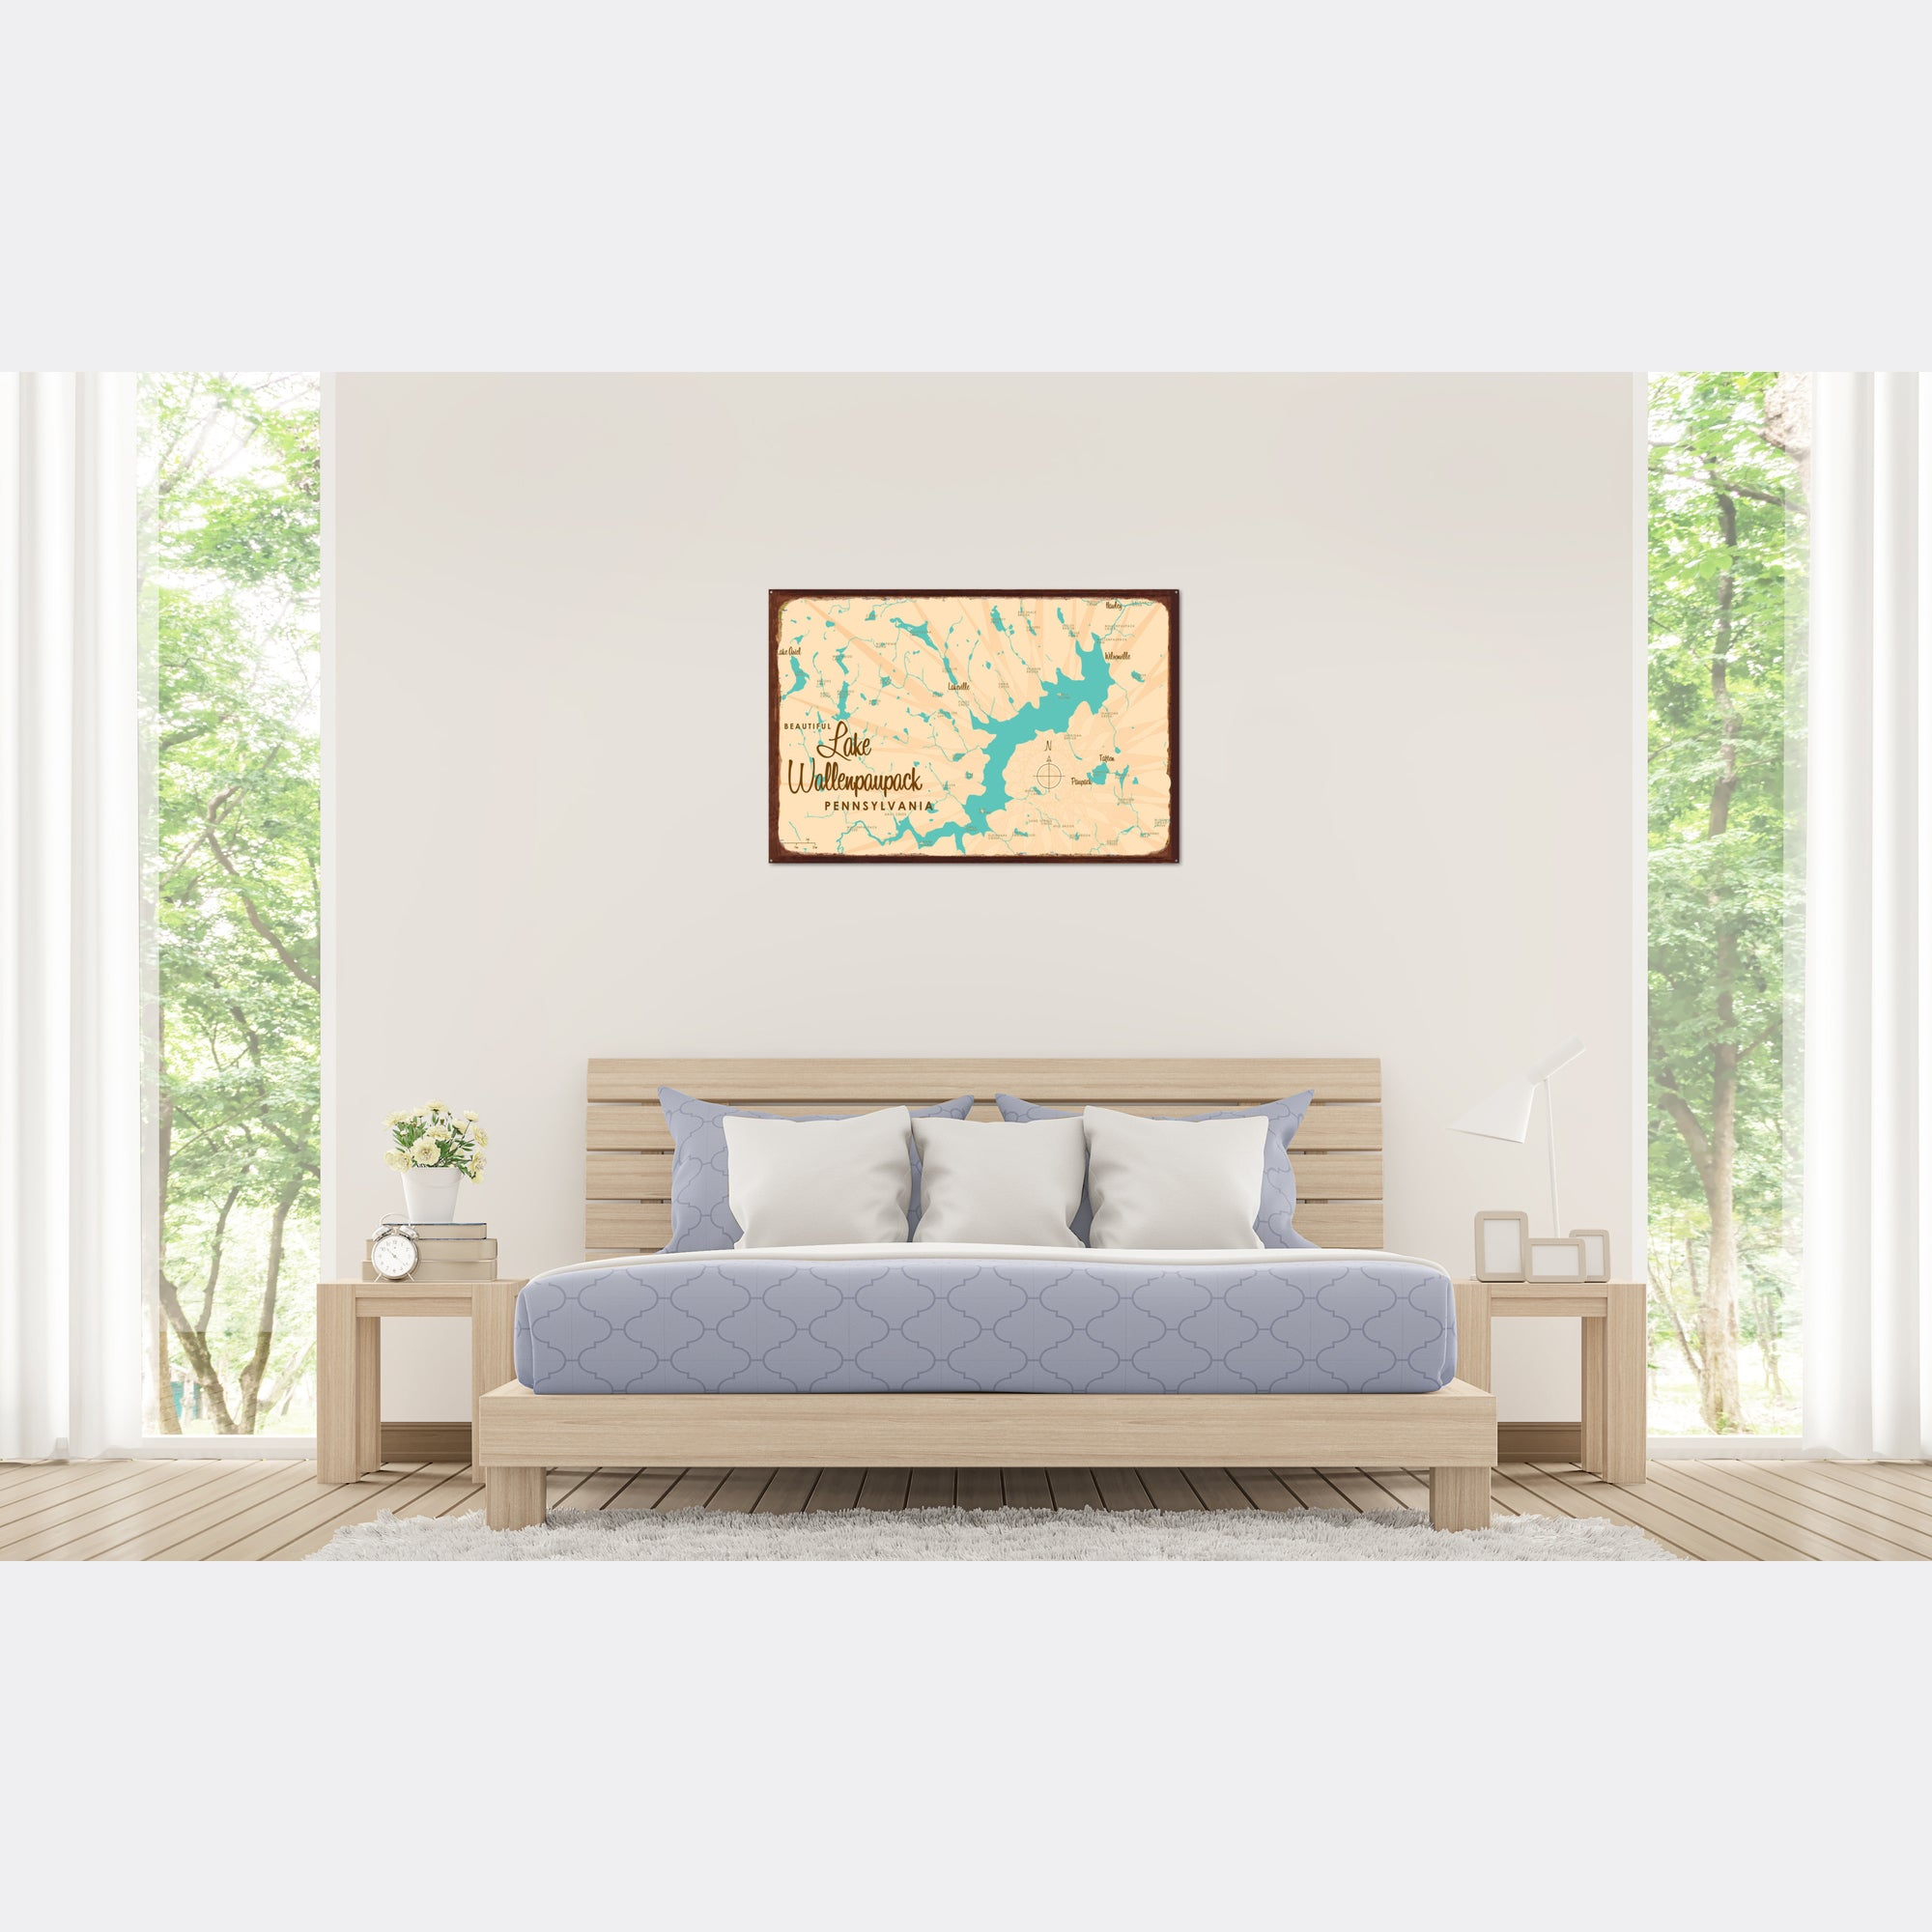 Lake Wallenpaupack Pennsylvania, Rustic Metal Sign Map Art